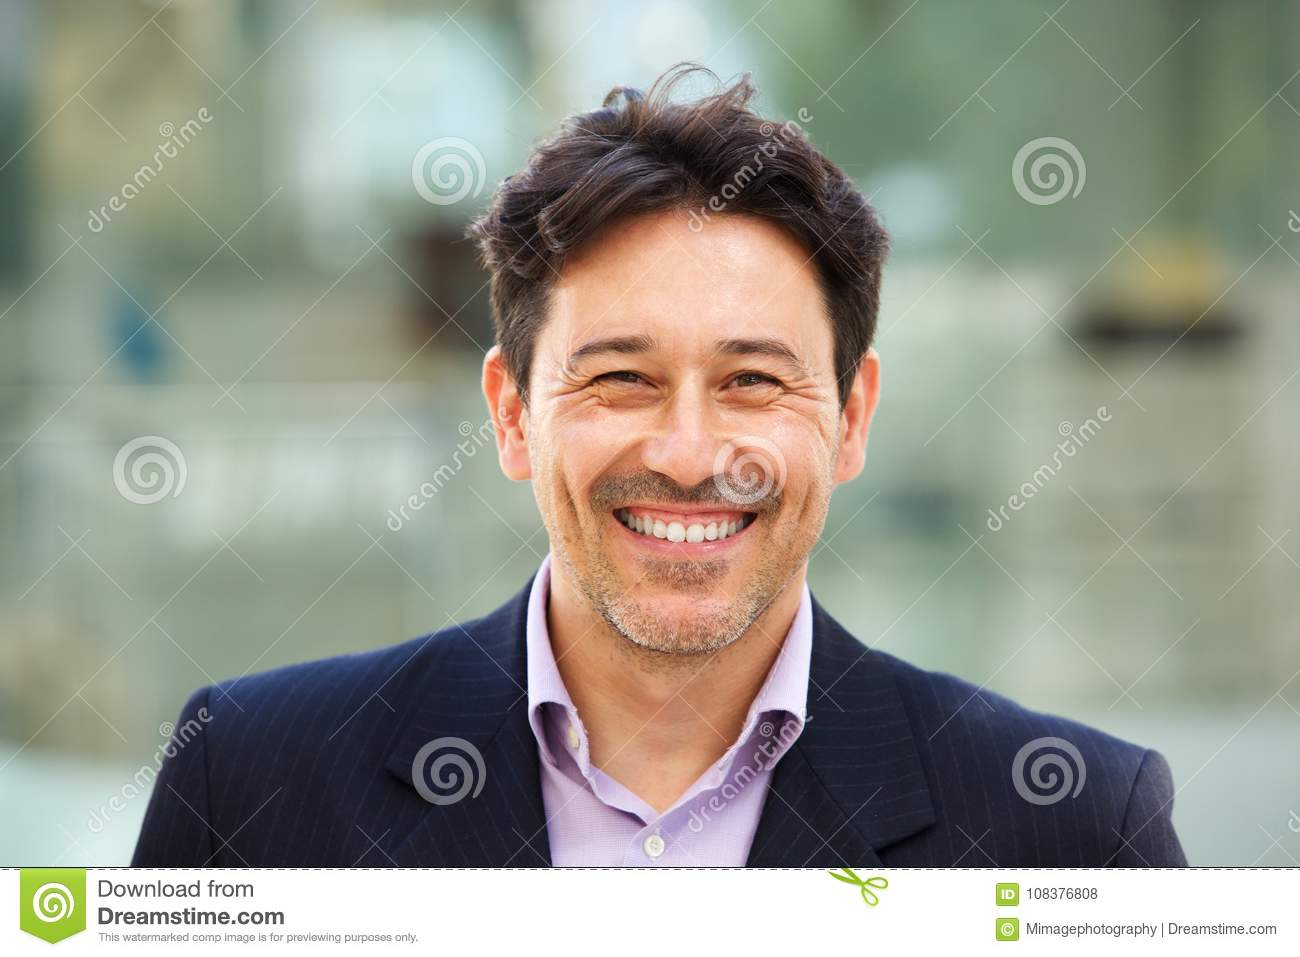 Download Handsome Older Man In Suit With Big Smile On His Face Stock Photo - Image of life, formal: 108376808